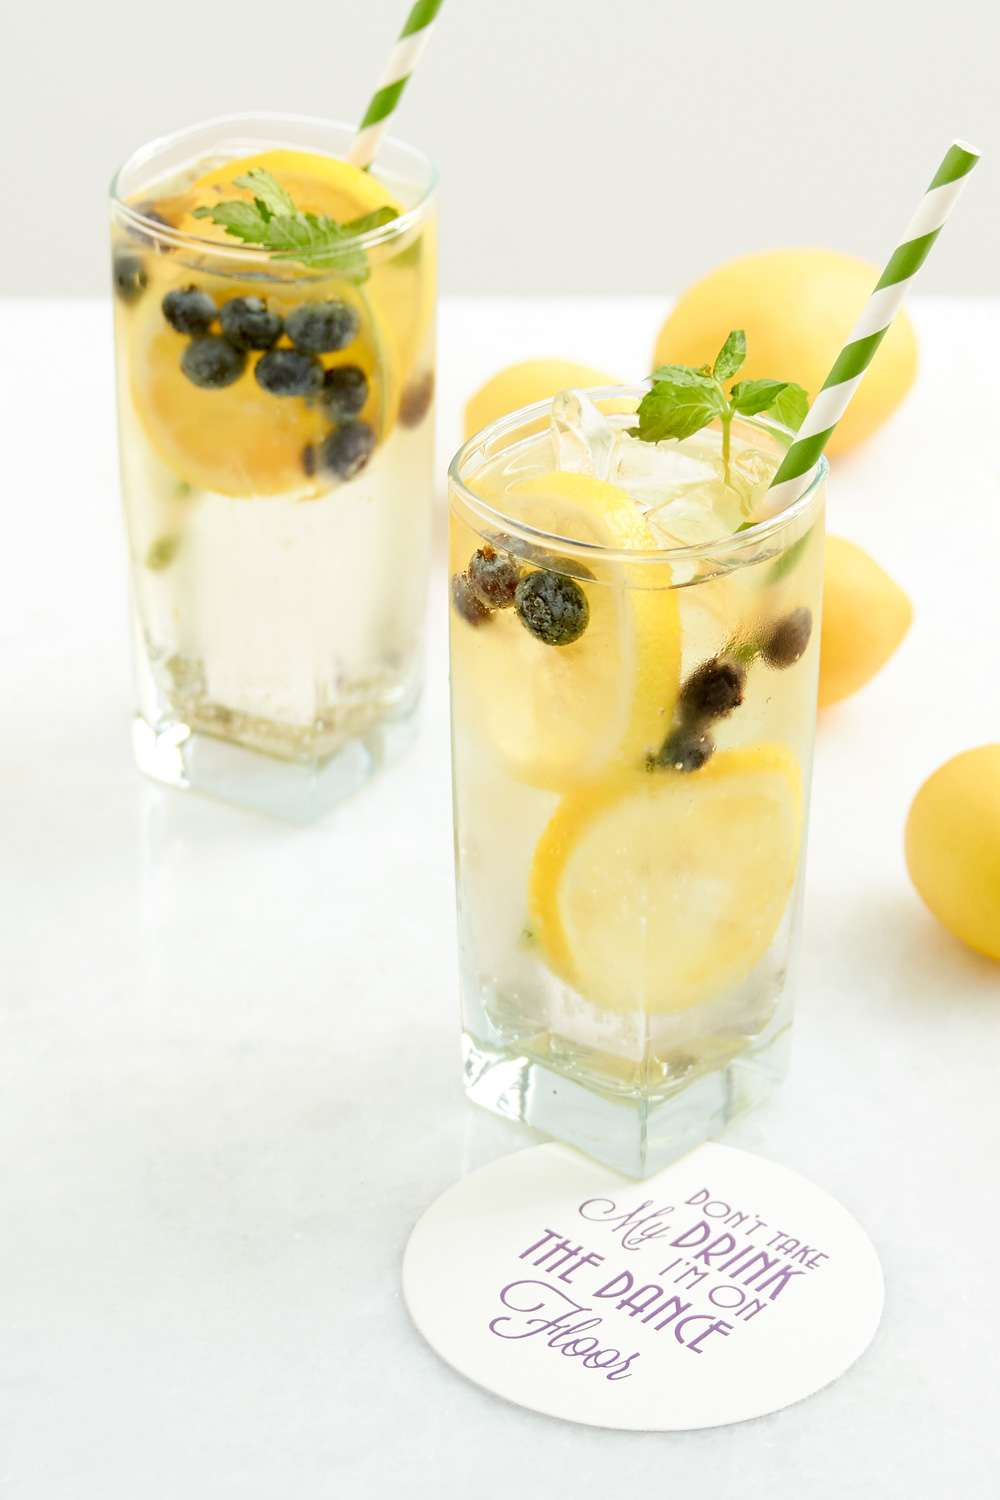 Limonchello Fizz cocktail recipe